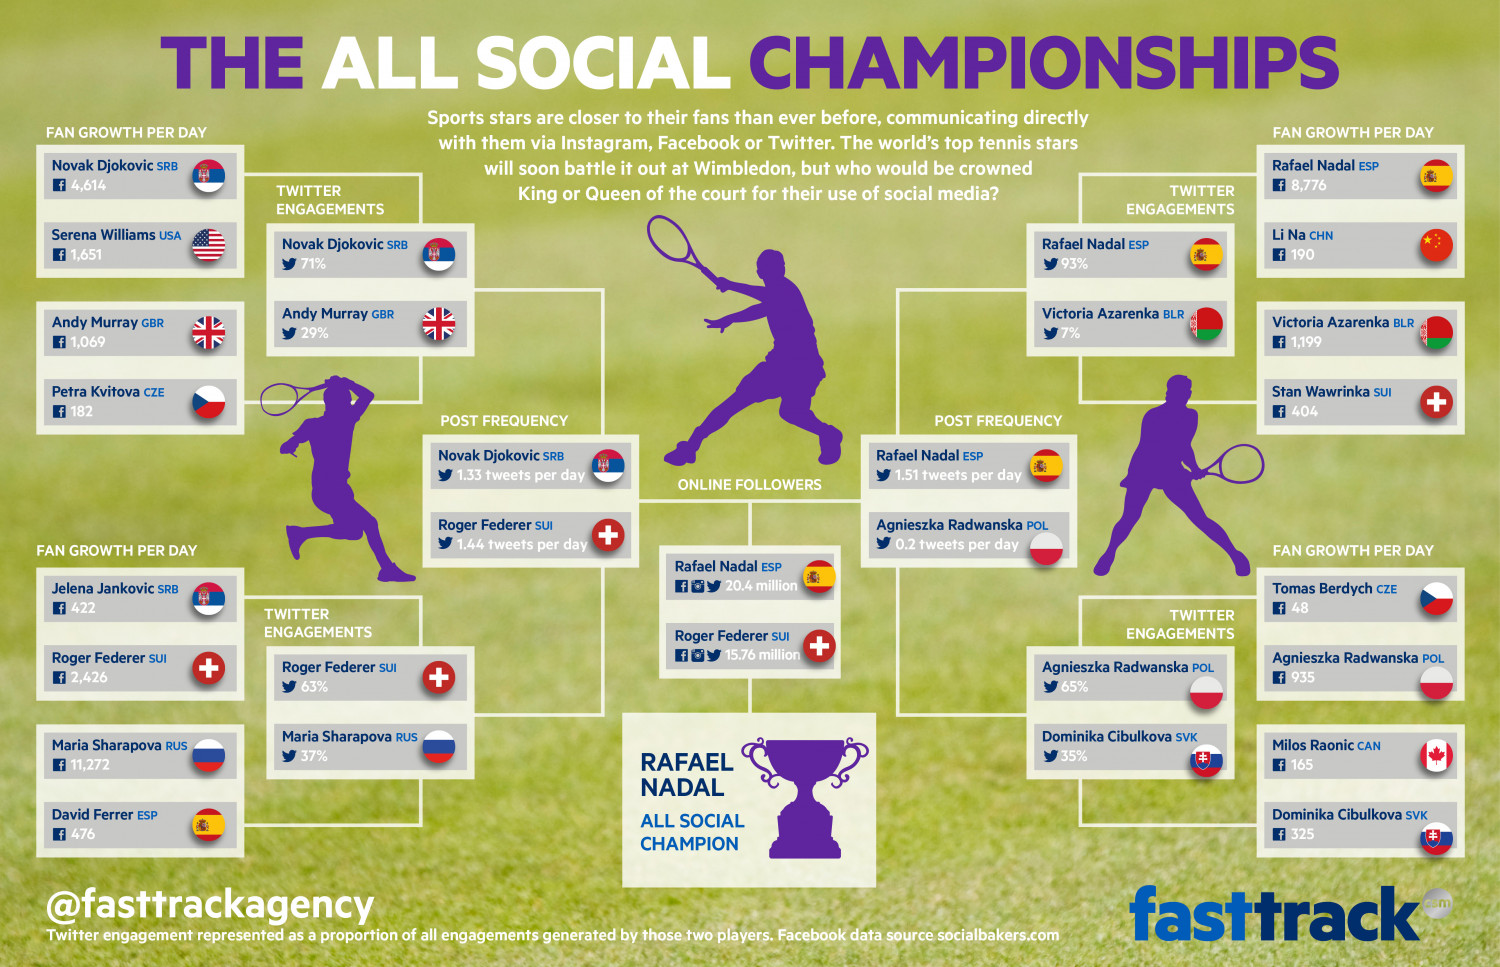 The All Social Championships of Tennis Infographic